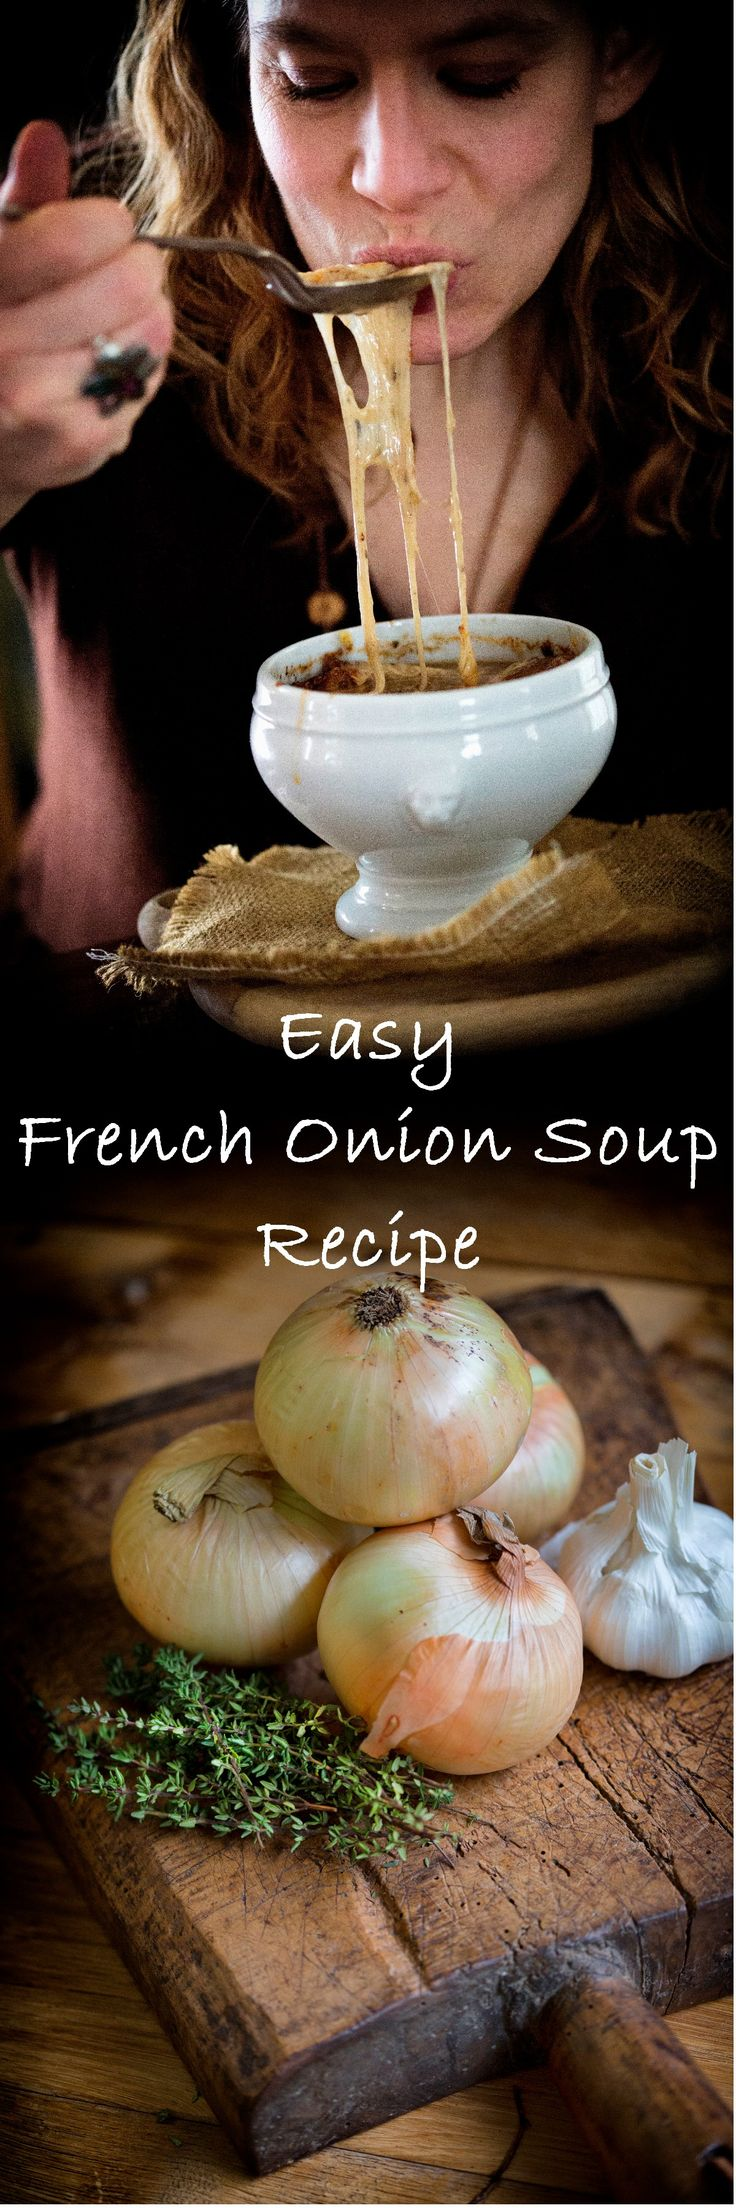 Quick and Easy recipe for French Onion Soup;  Classic French food perfect for a cold Winter's day French Food Recipes  #Frenchrecipes #Frenchfood http://eattillyoubleed.com/2016/01/french-onion-soup/